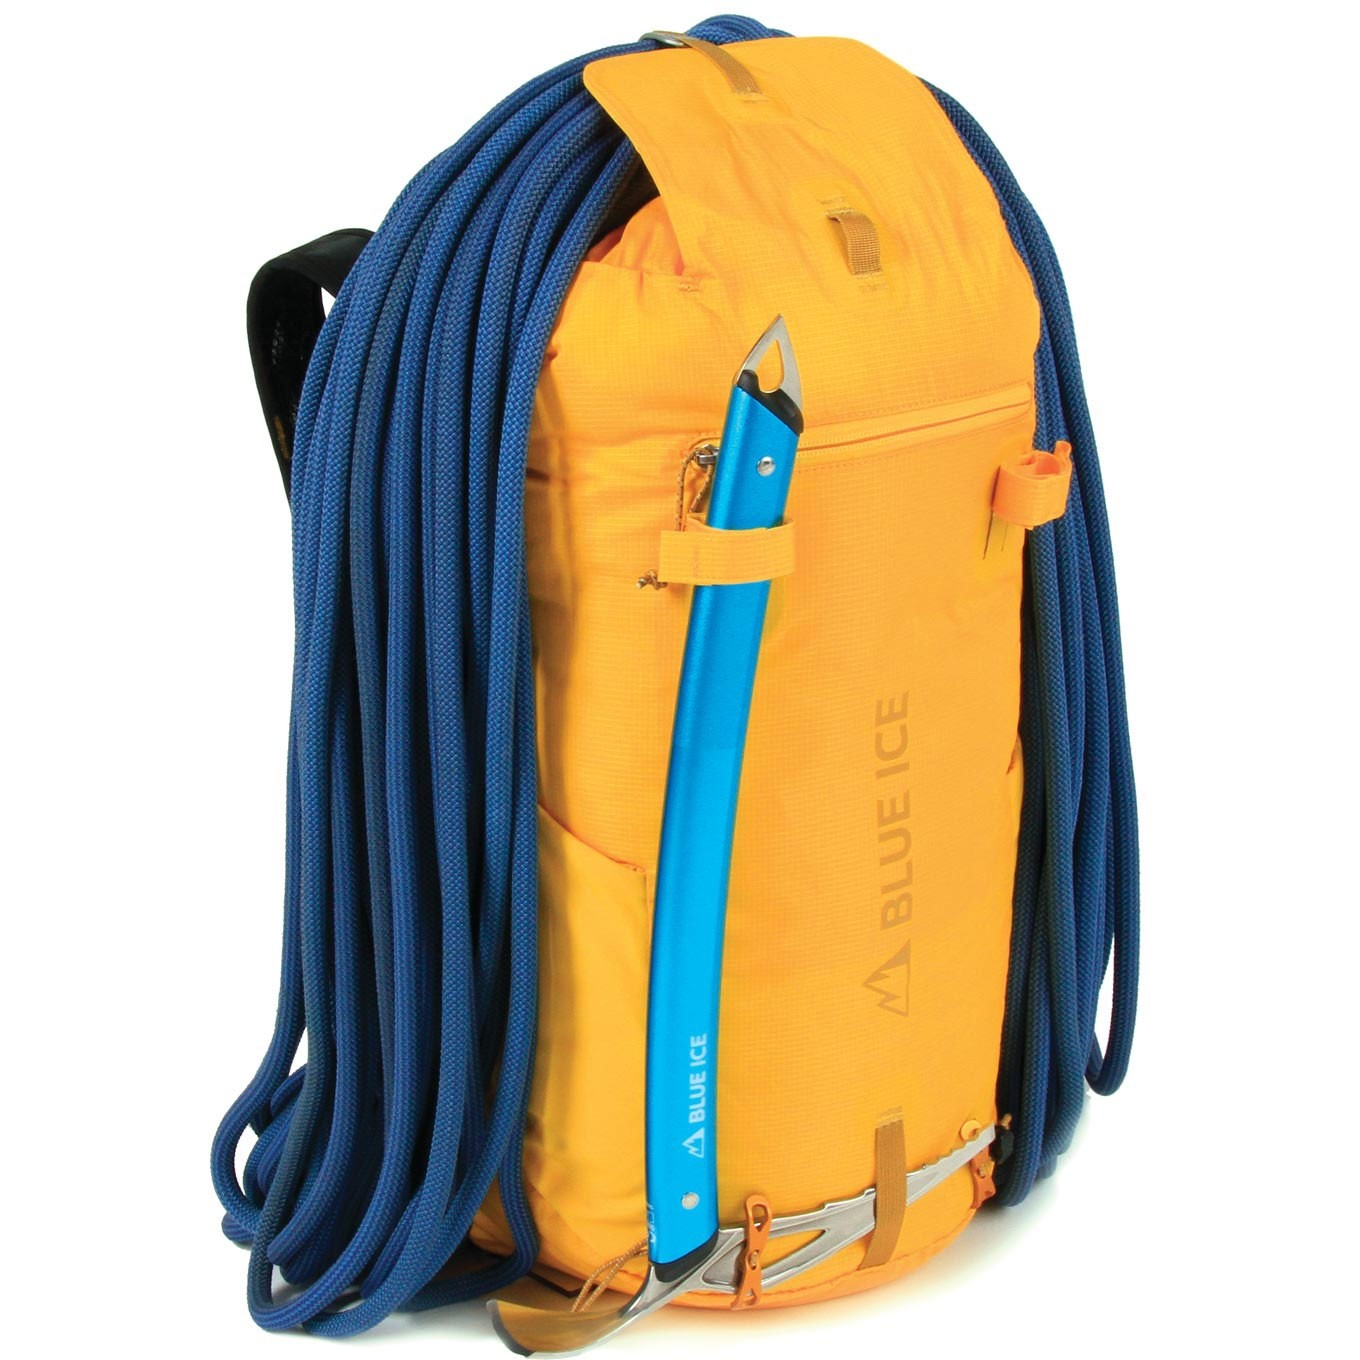 Blue Ice Dragonfly 25L Rucksack - Spectra Yellow - ice axe rope